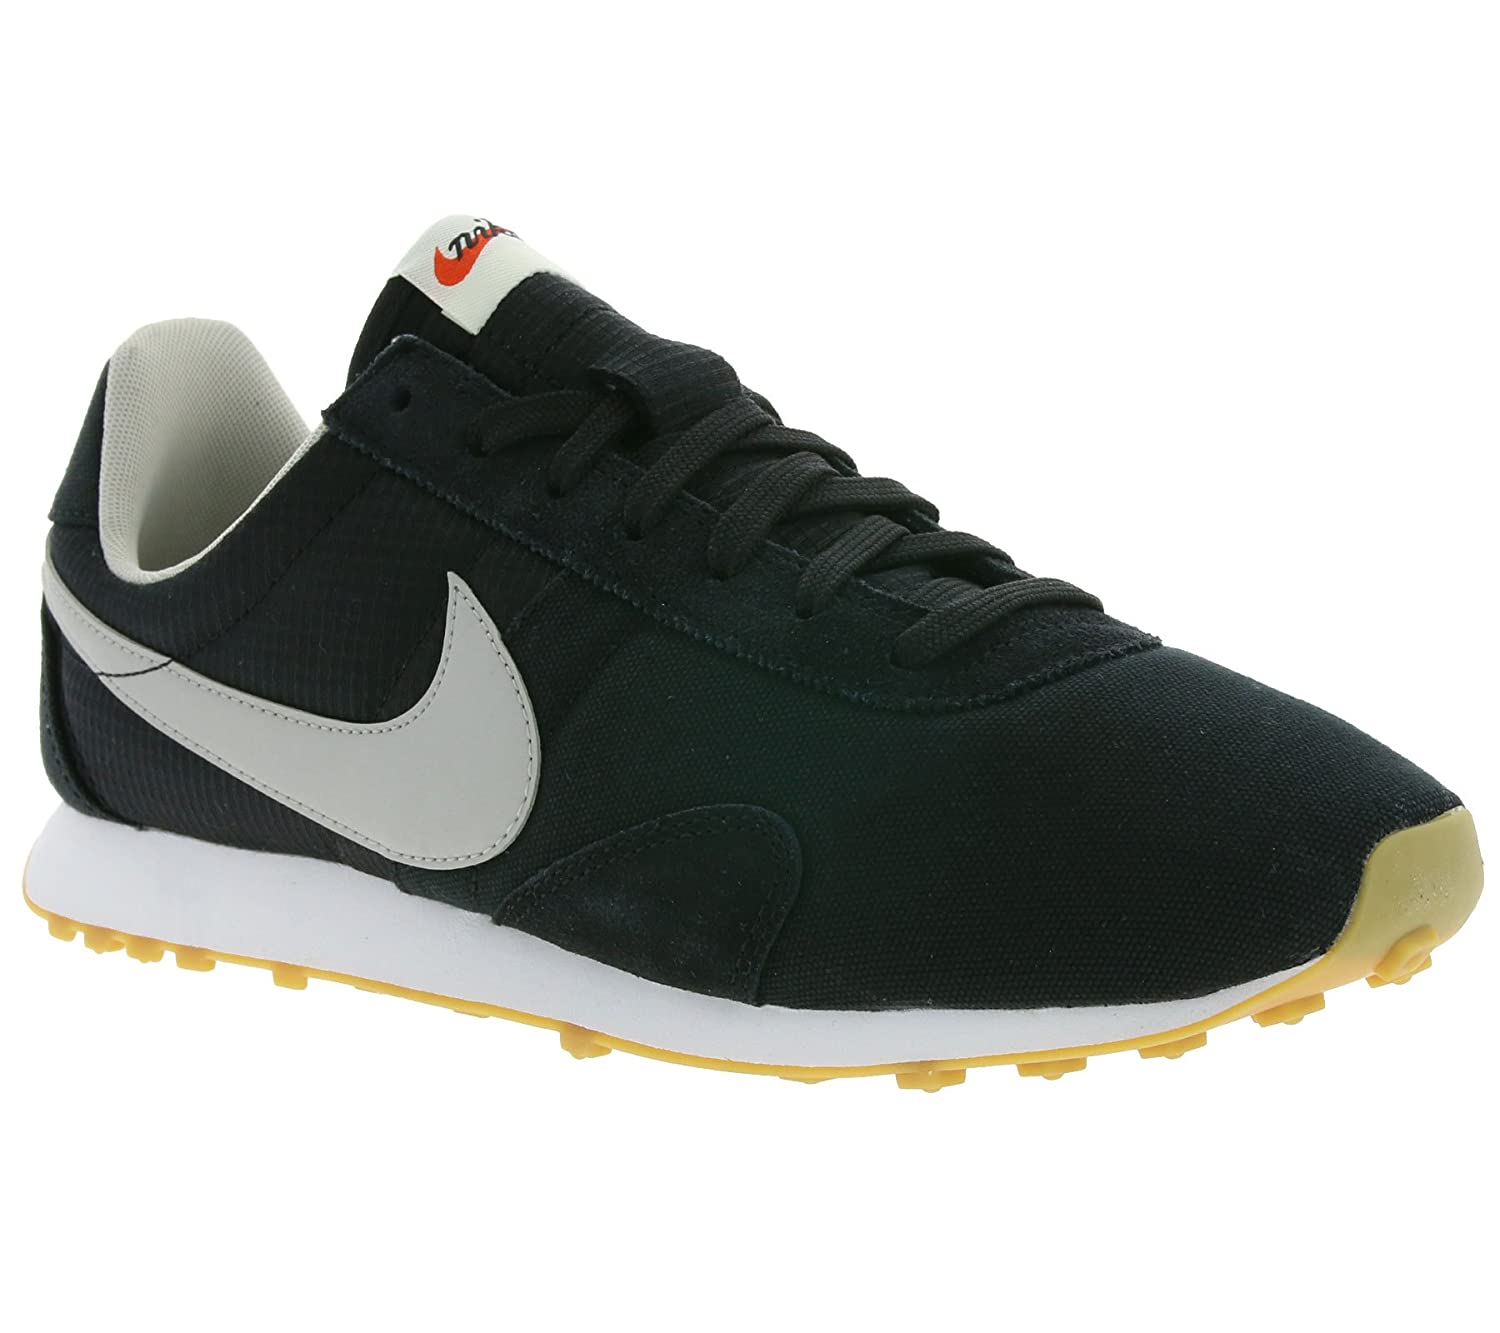 newest 6bab4 5b832 NIKE W Pre Montreal Racer Vintage Women s Sneaker Black 828436 007,  Size 40.5  Amazon.co.uk  Shoes   Bags